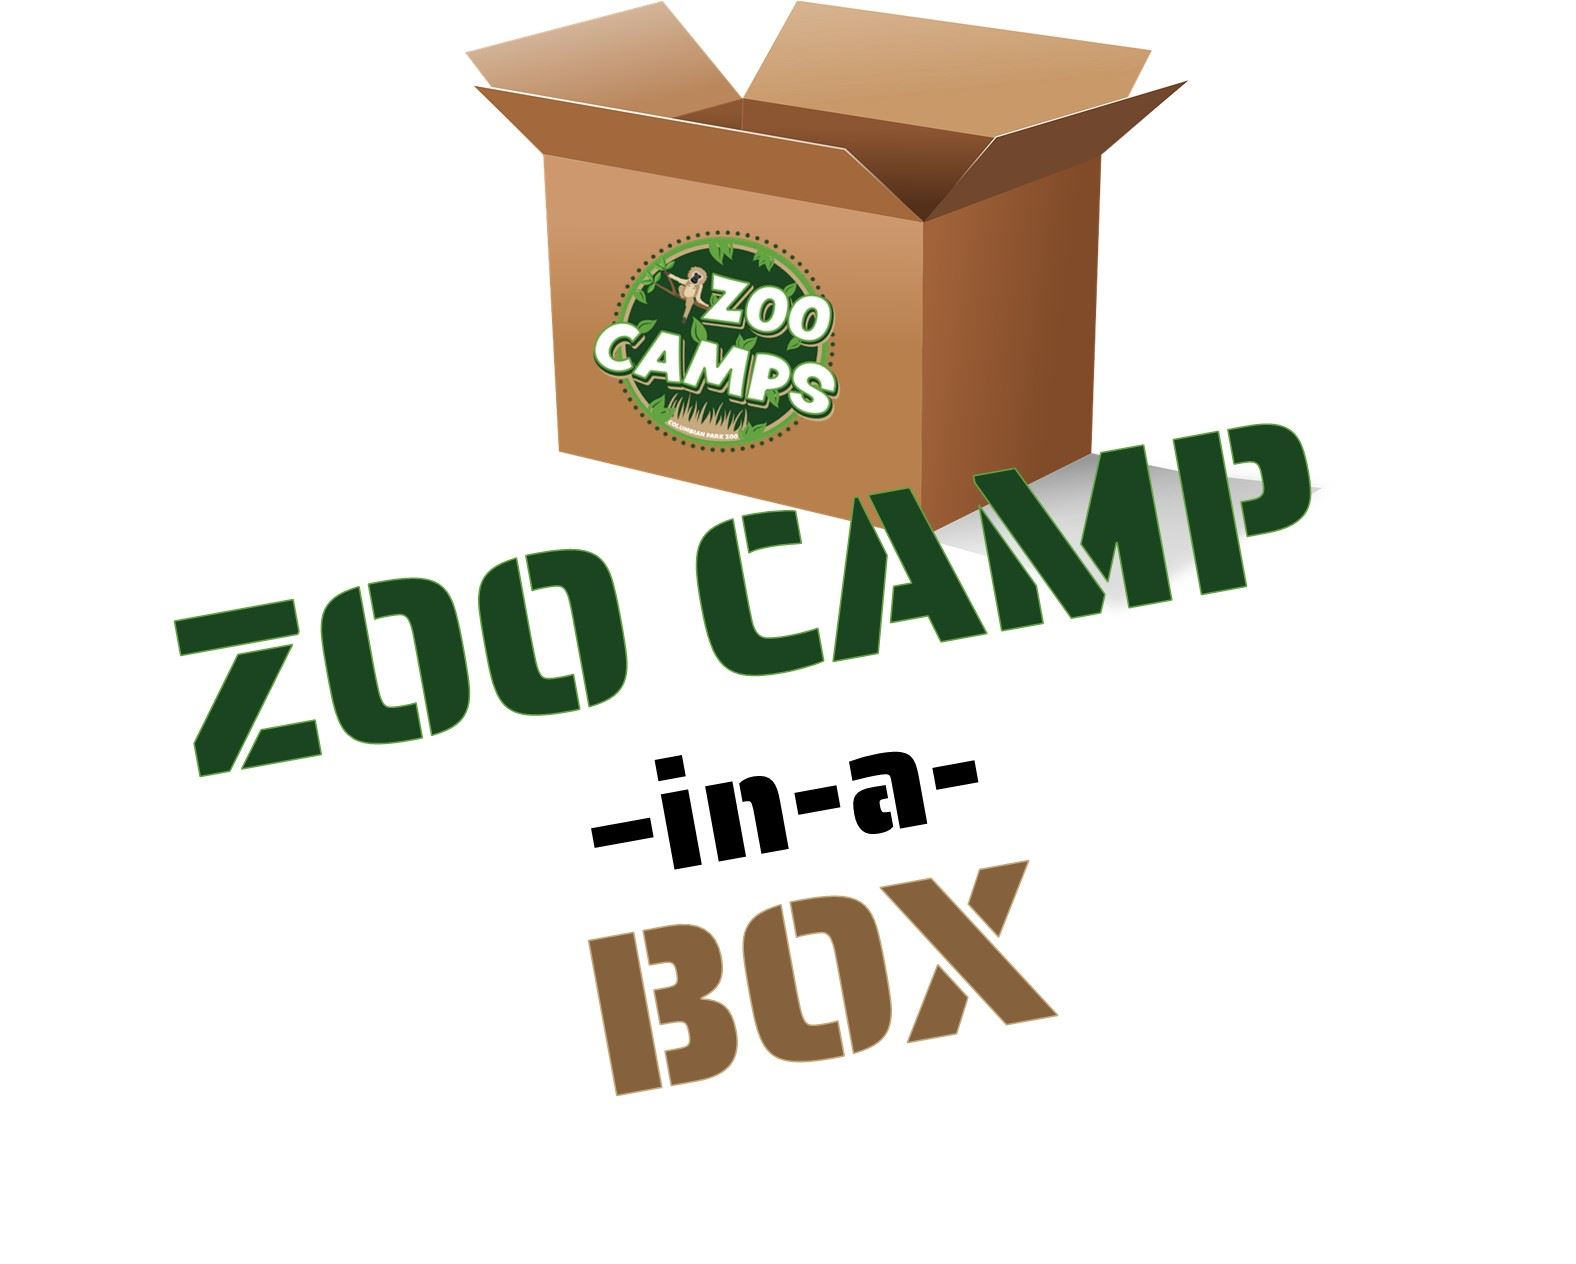 Zoo Camp in a Box logo